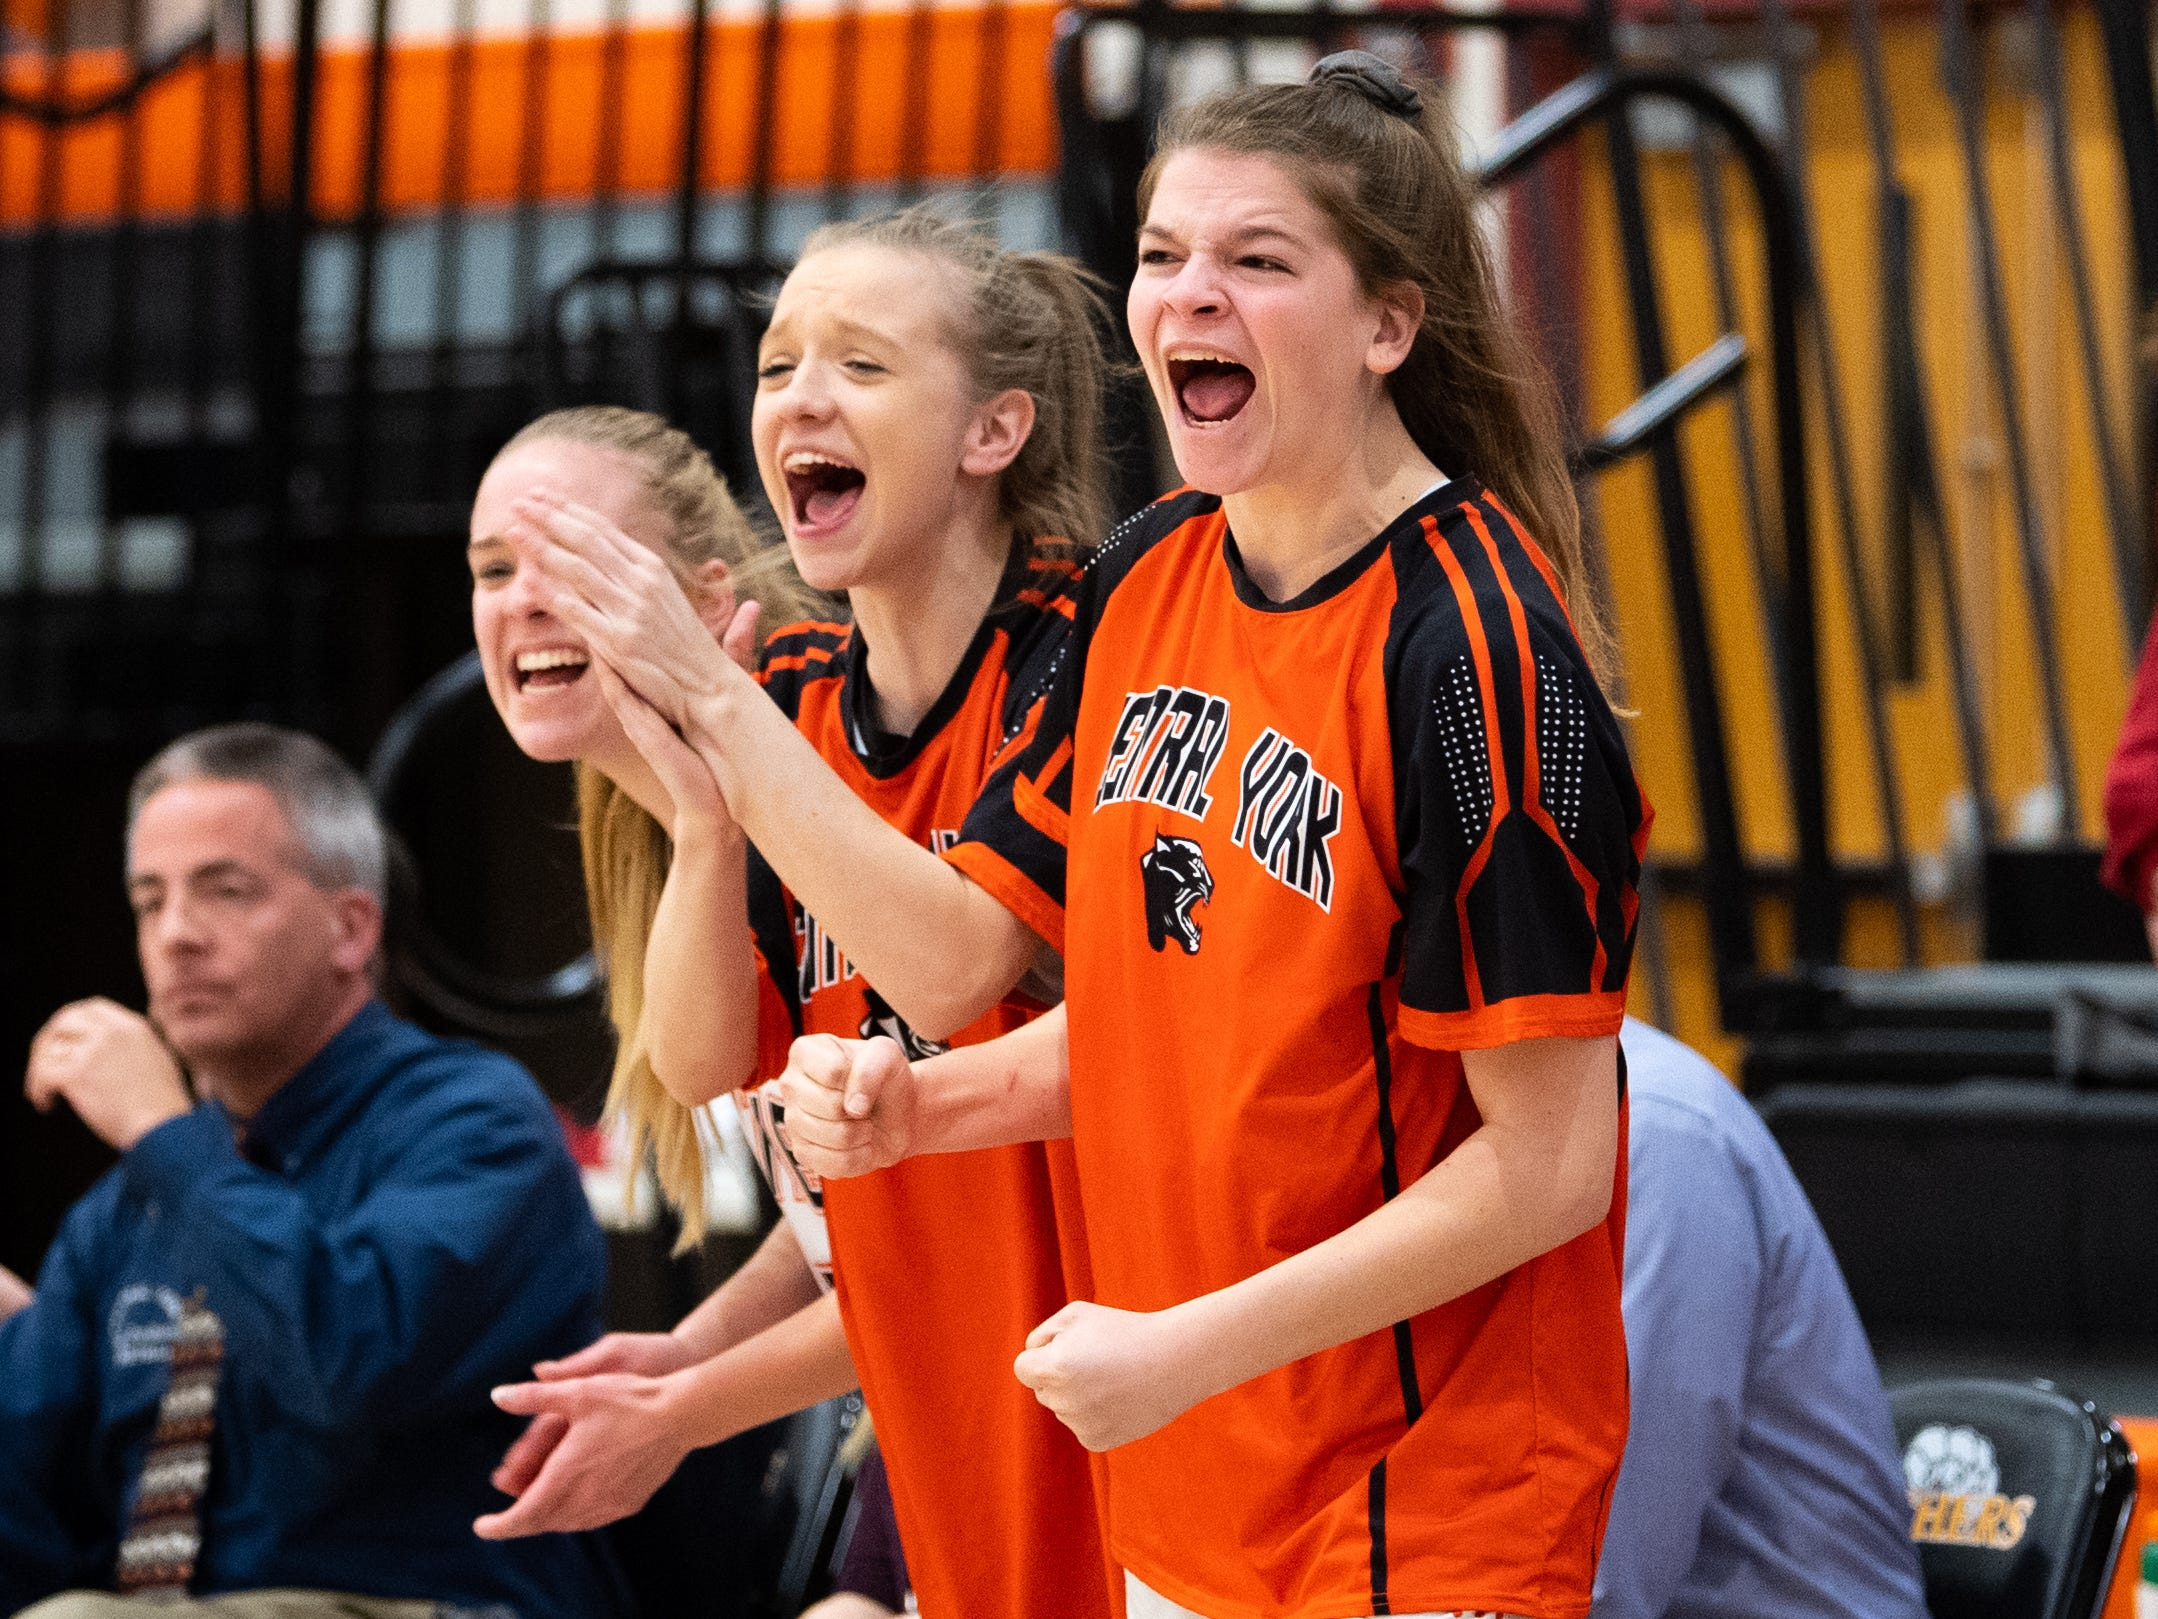 Central York celebrates after a crucial score during the girls' basketball game between Central York and Red Lion at Central York, Tuesday, December 11, 2018. The Panthers defeated the Lions 40-38.